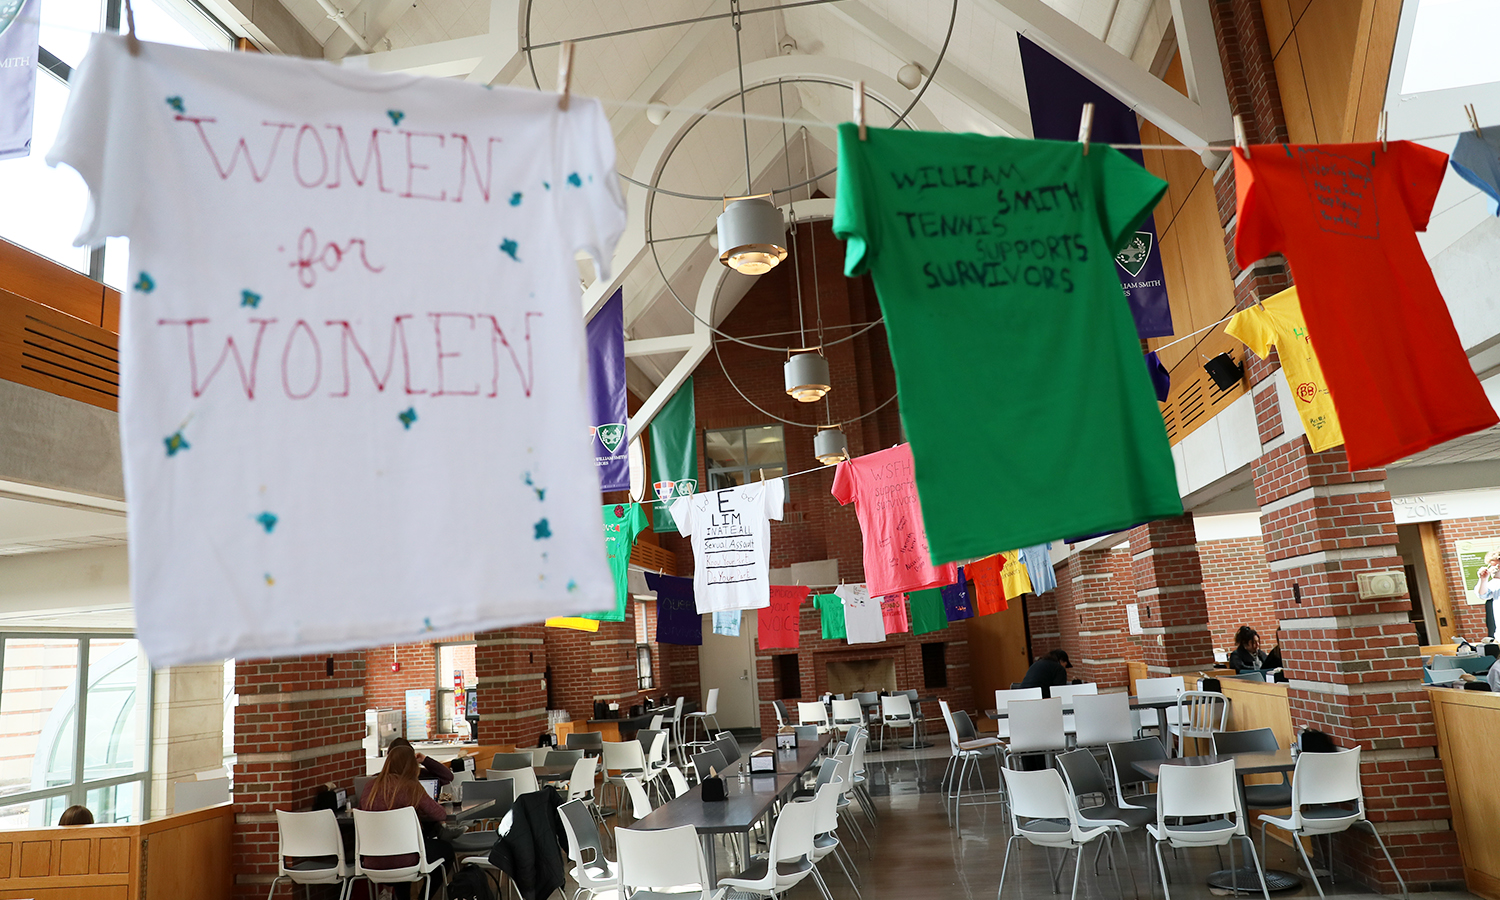 As part of the Clothesline Project, students hang T-shirts with personal messages about sexual violence or a general message of support for survivors during Sexual Assault Awareness Month.